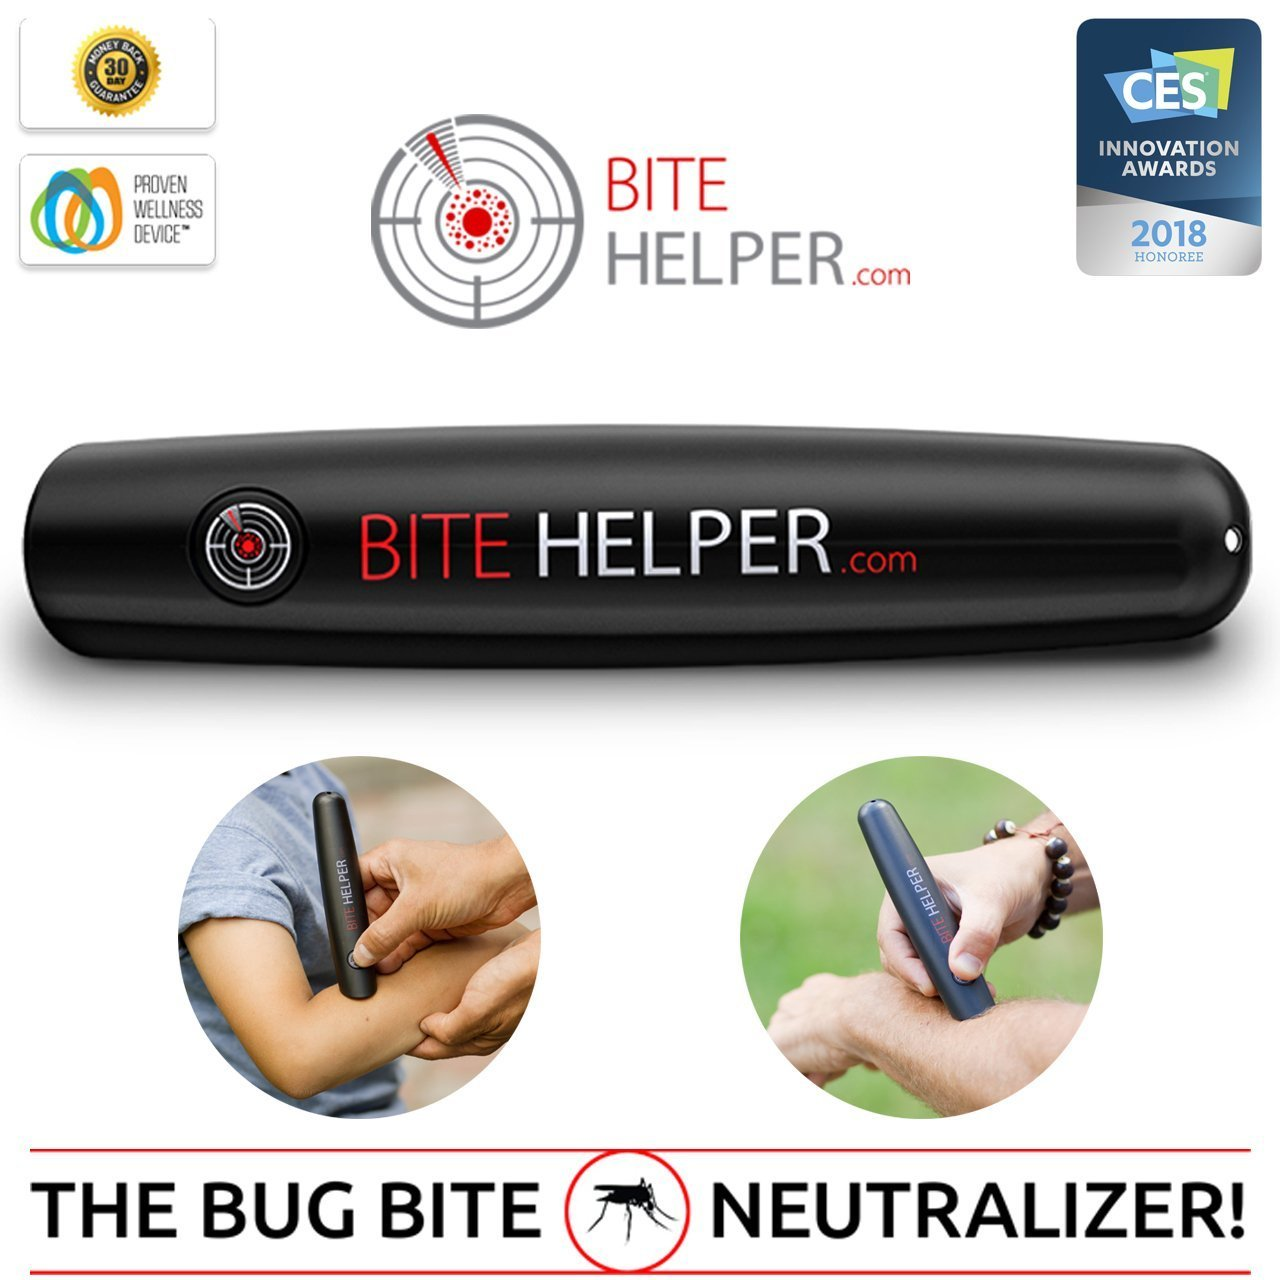 Bite Helper - Bug Bite Itch Neutralizer, Bug Bite Relief Solution for the Entire Family,Black,6.5'' x 1.25''